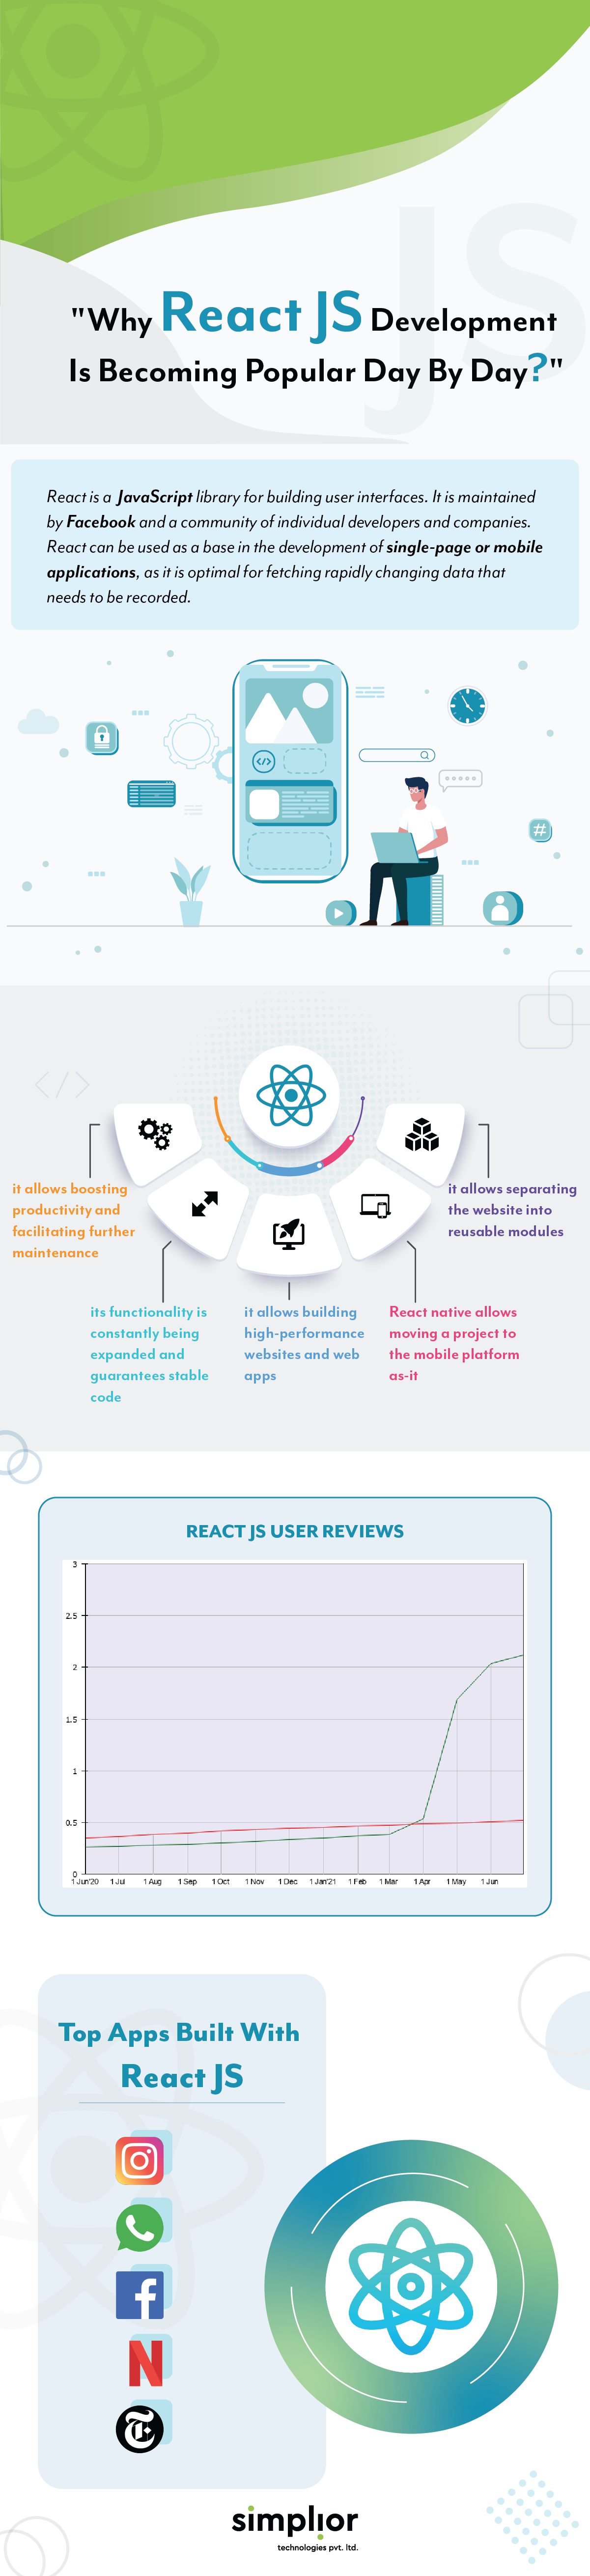 Why ReactJS Development Is Becoming Popular Day By Day - Infographic - Simplior Technologies